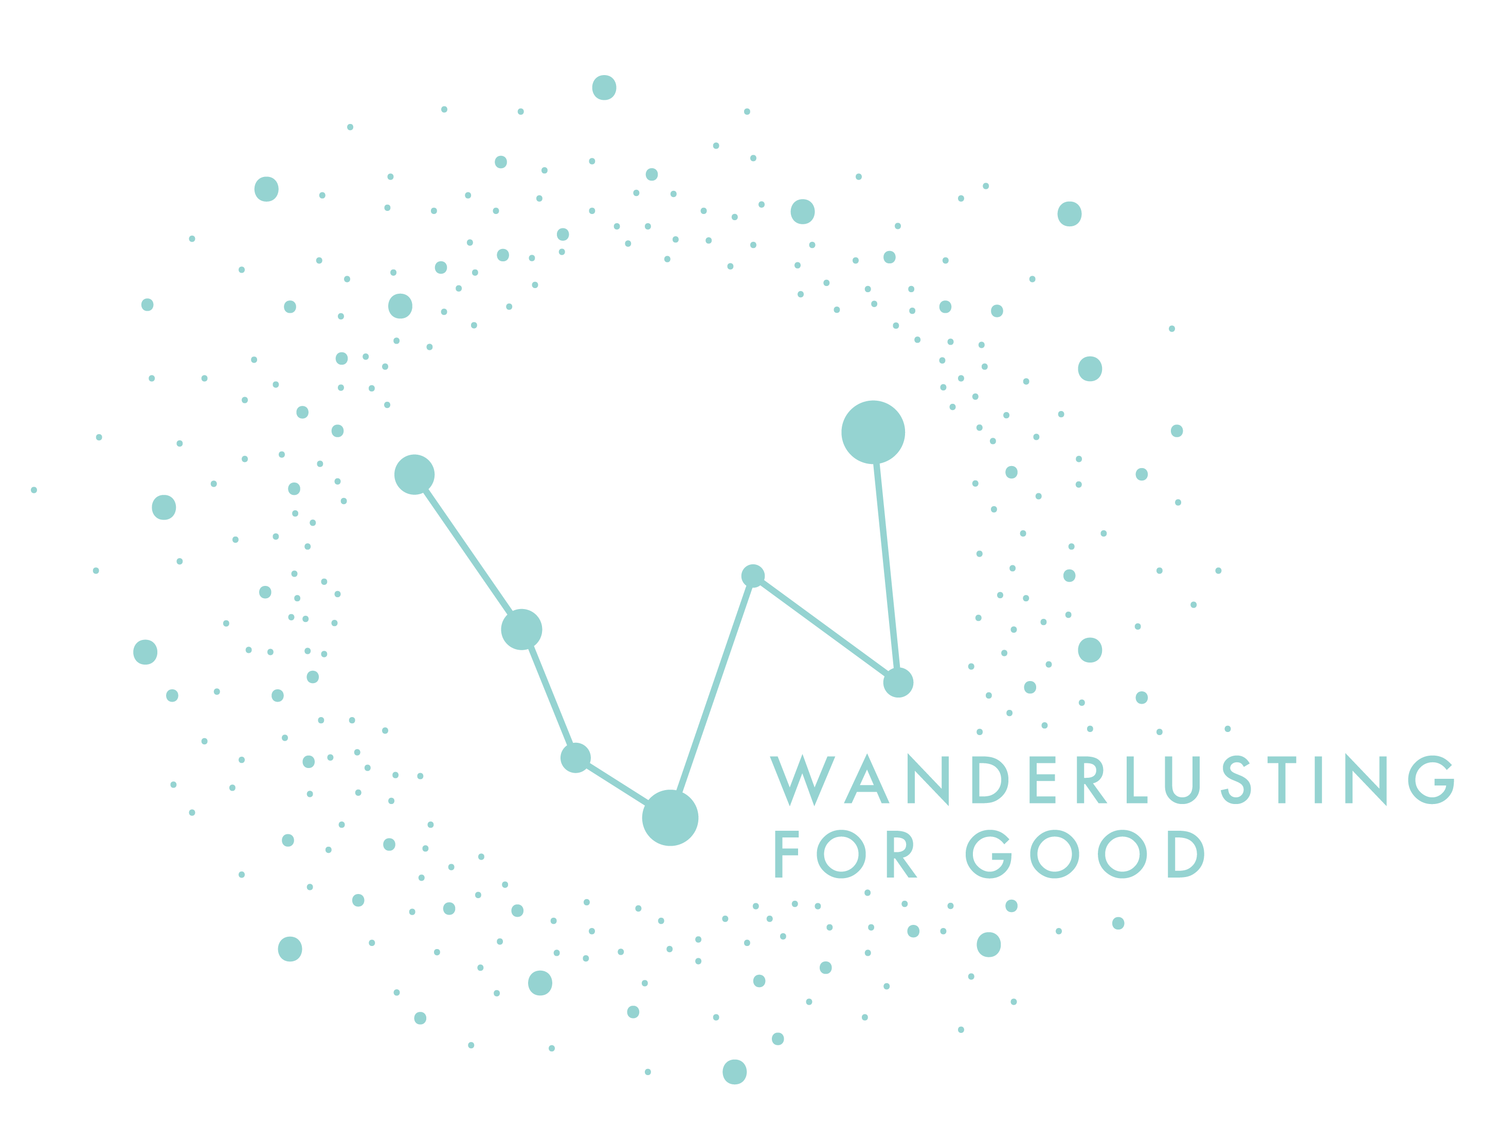 Wanderlusting for Good